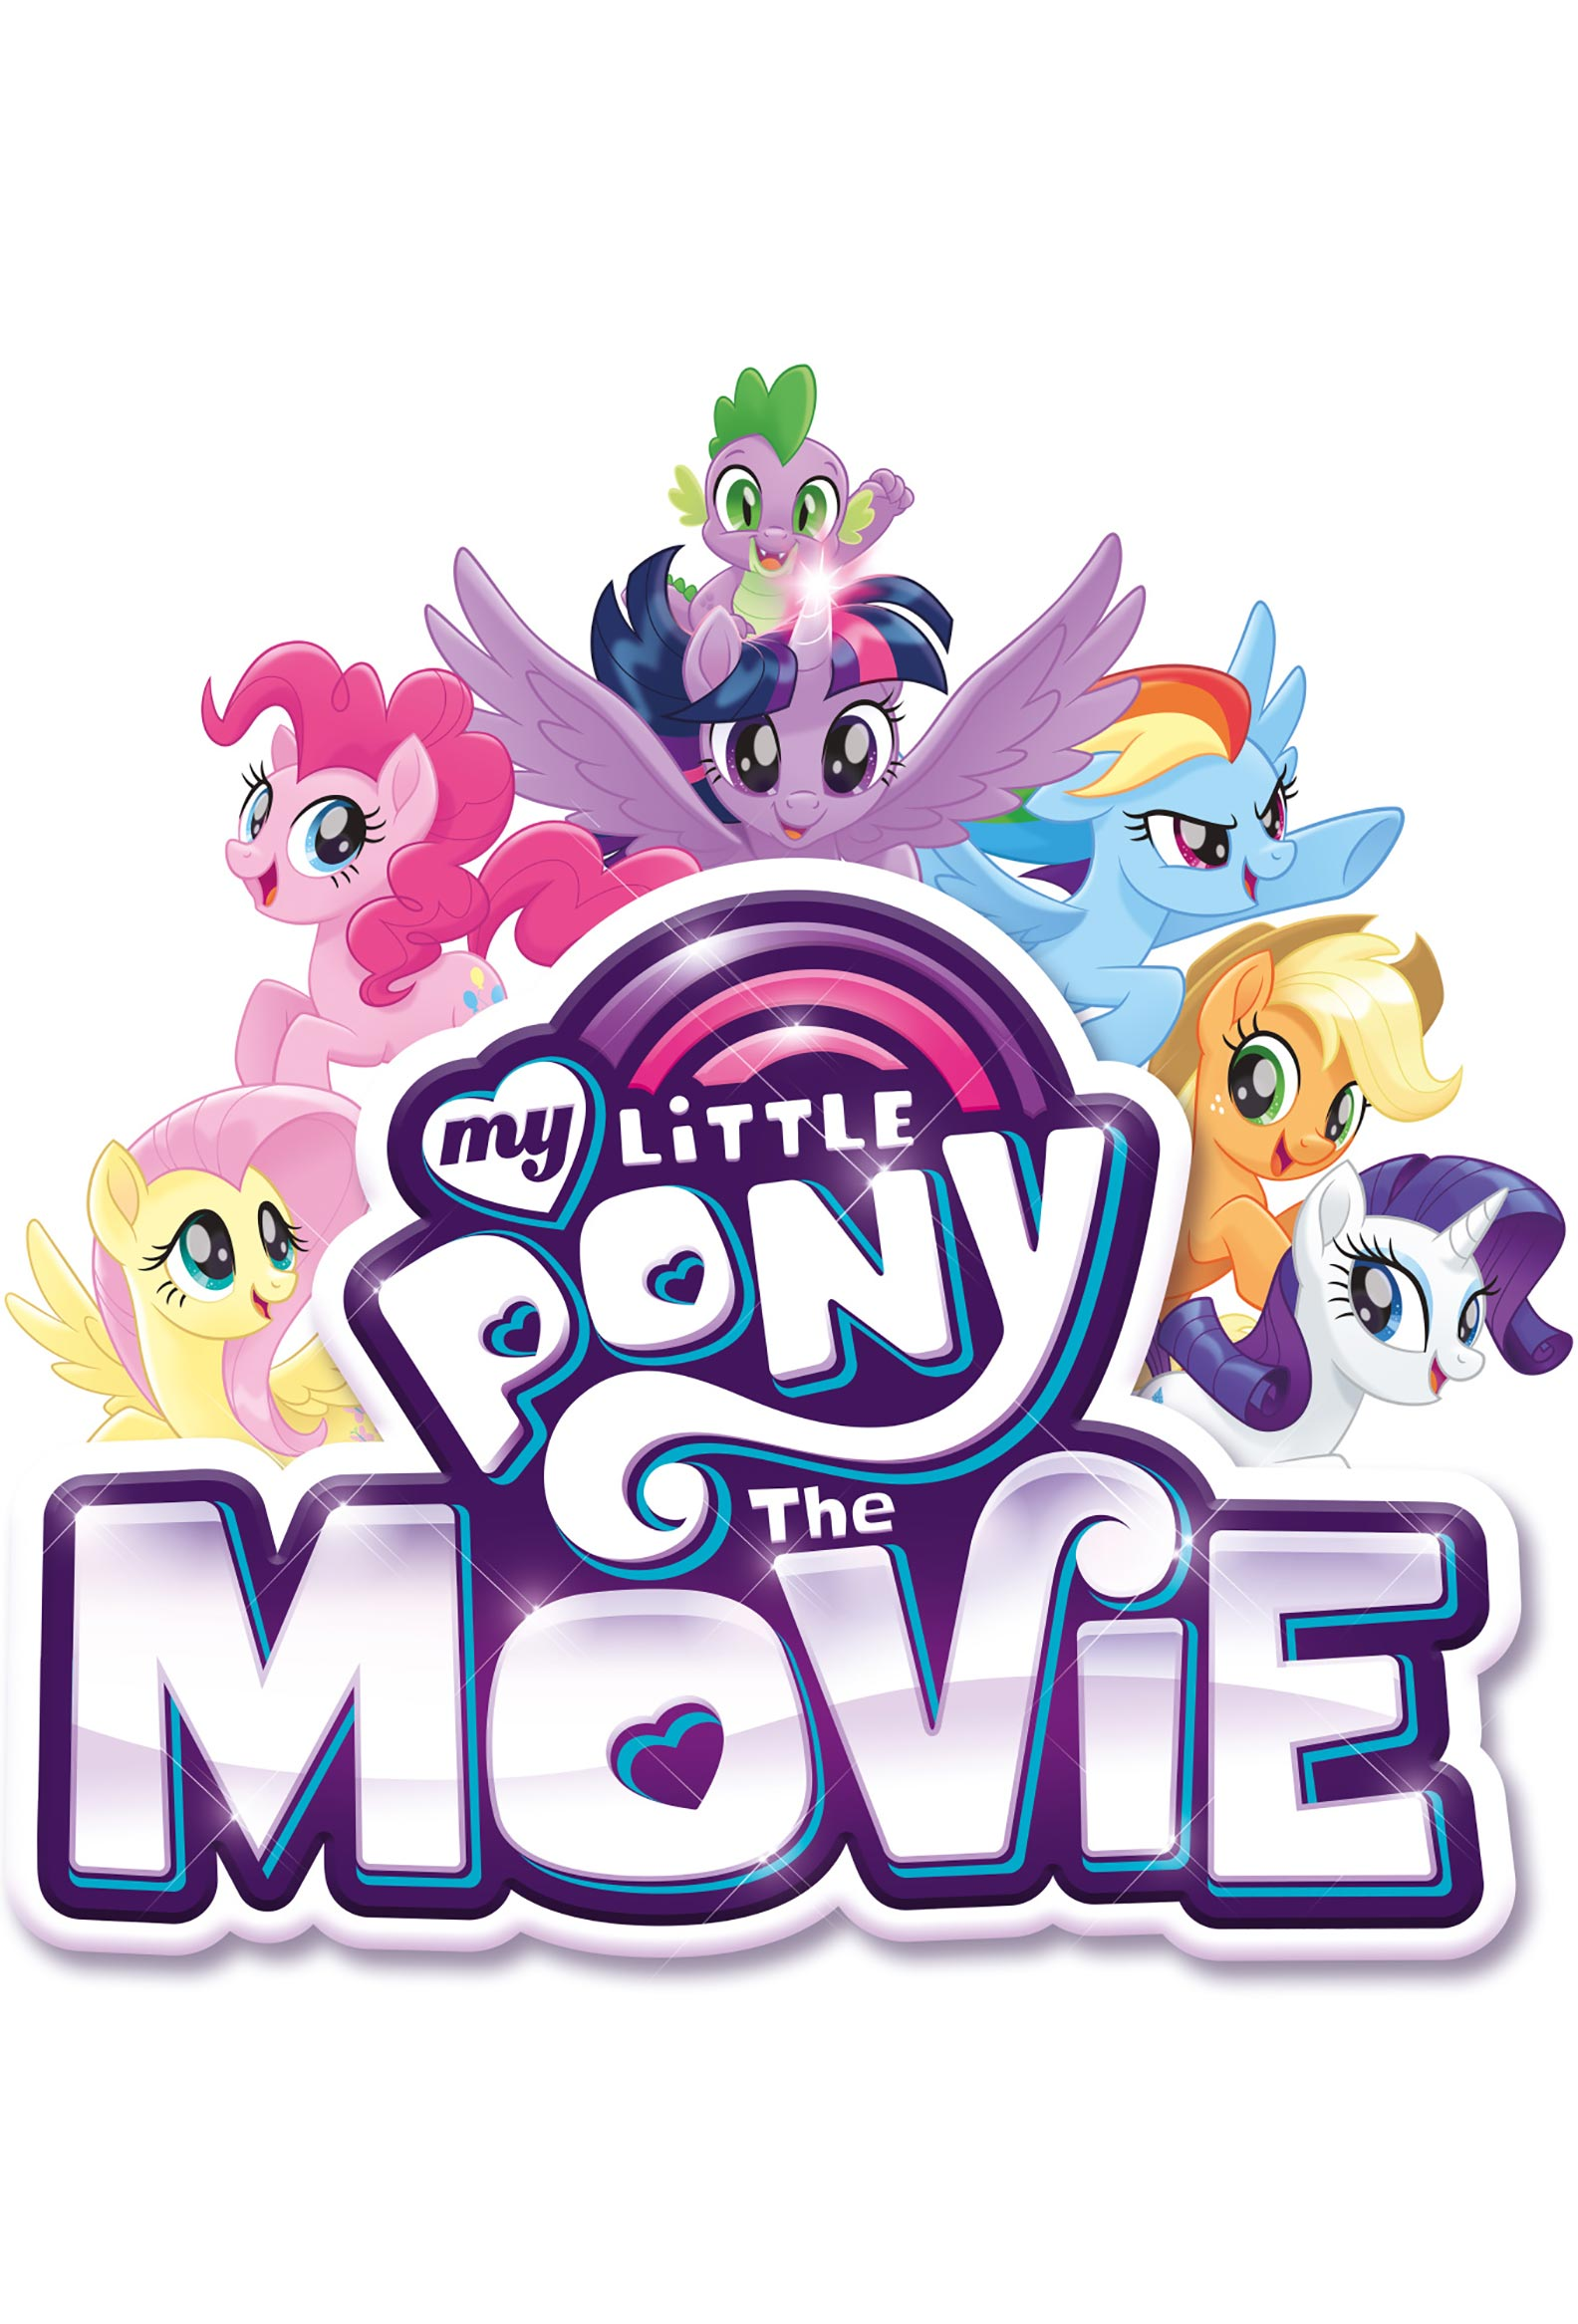 My Little Pony: The Movie (2017) Poster #5 - Trailer Addict